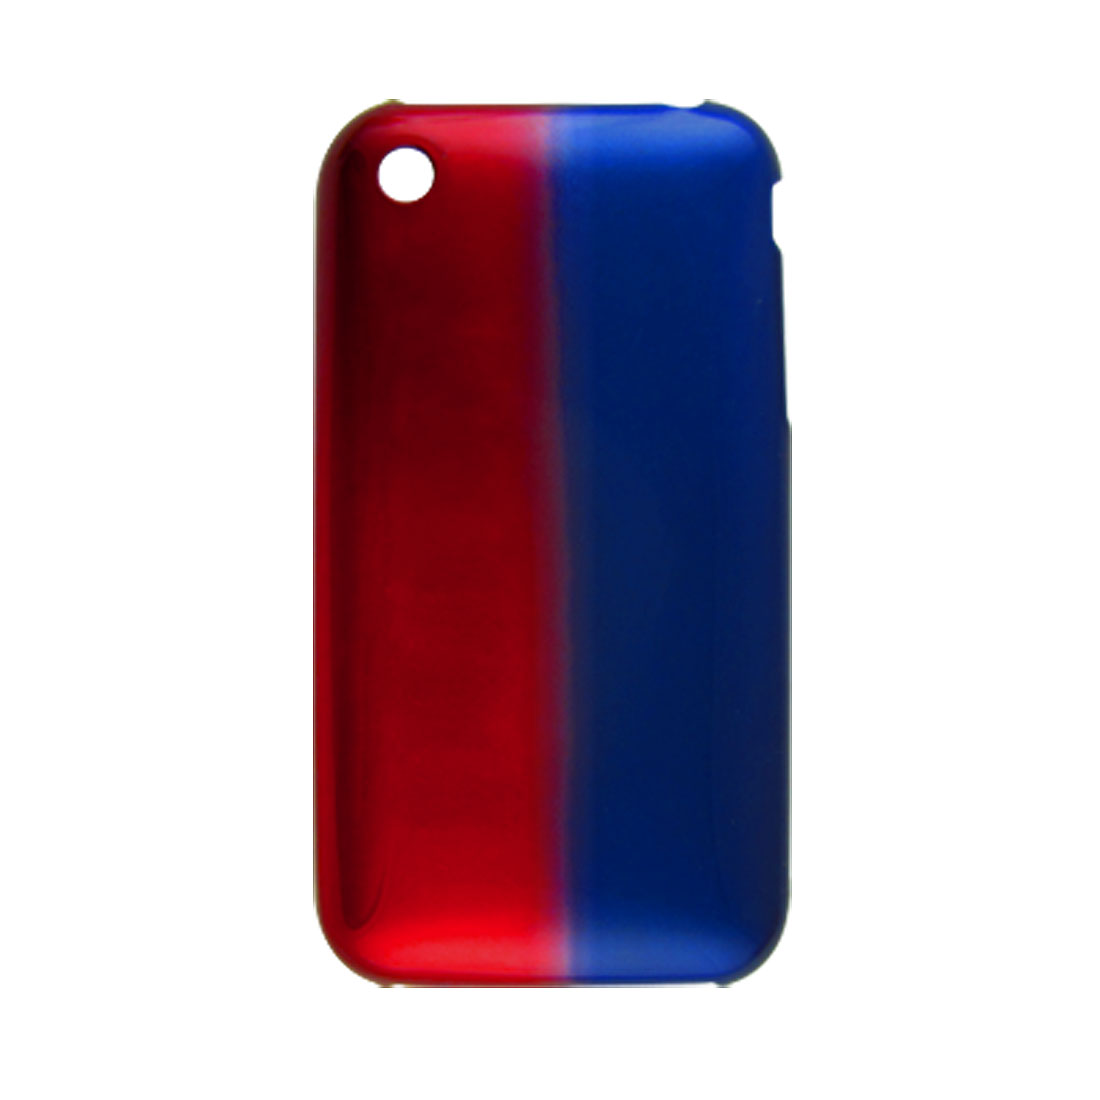 Dark Red Blue Hard Plastic Shield Cover for iPhone 3G